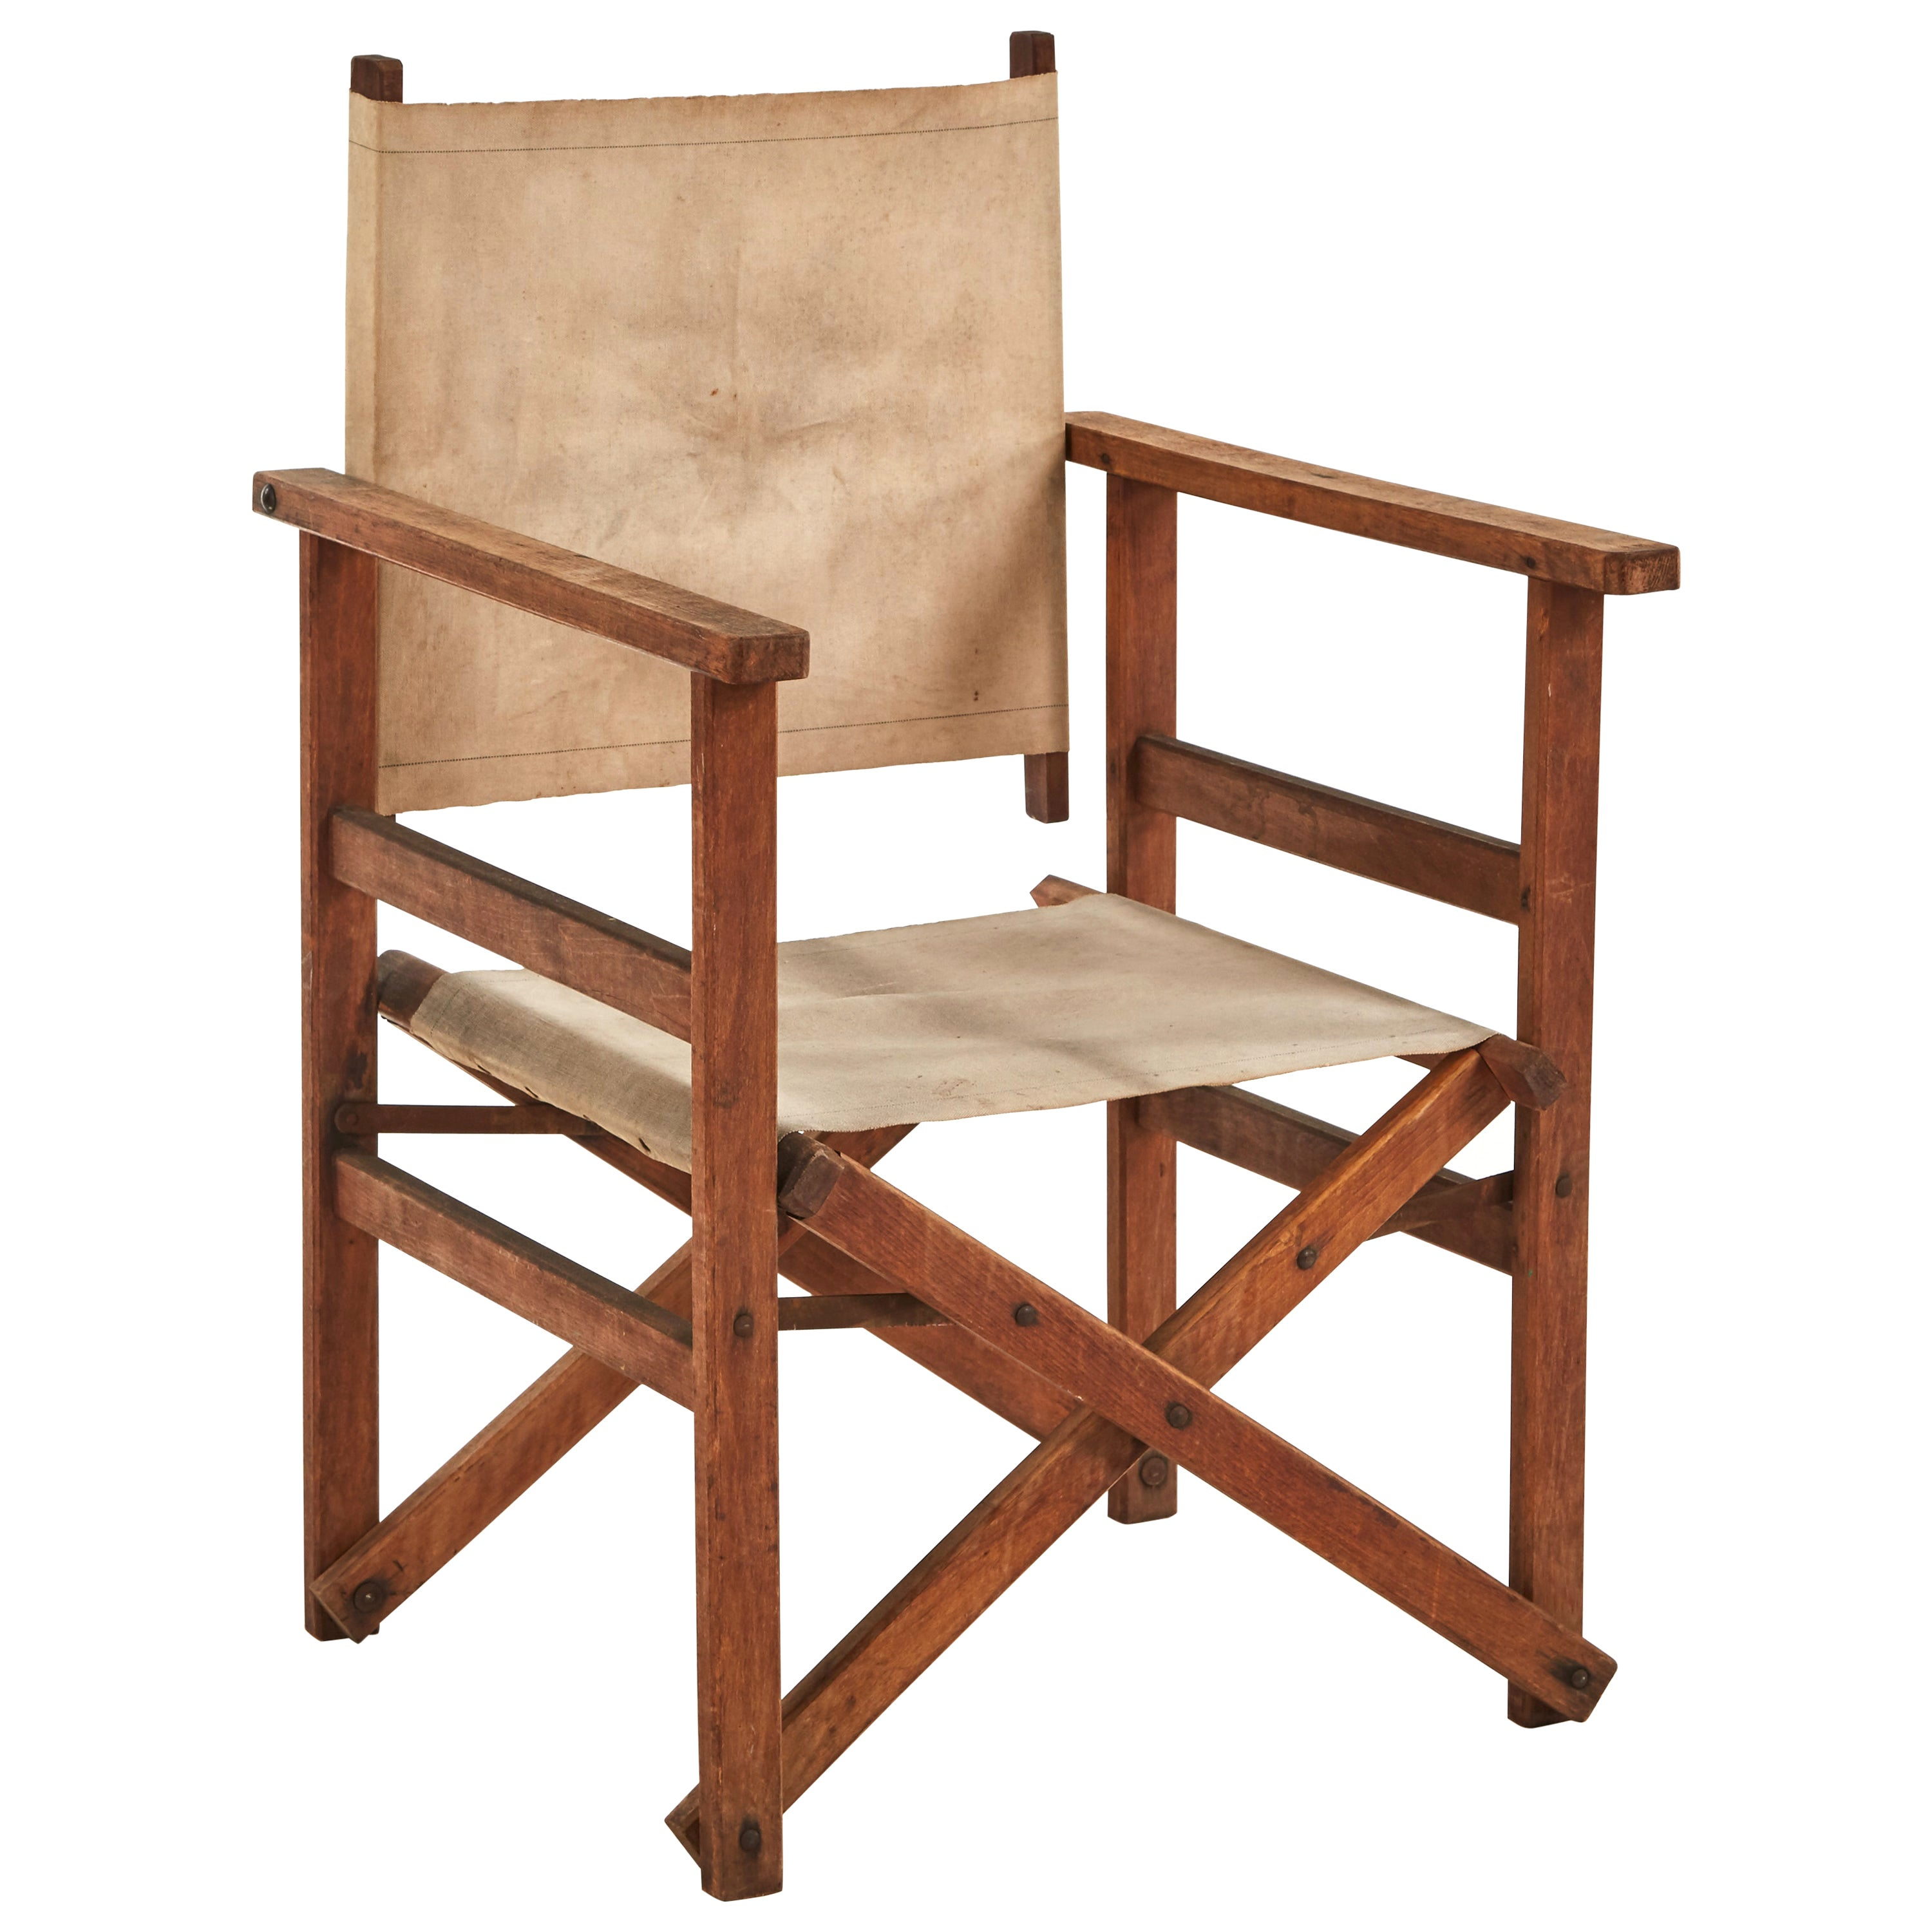 Early 20th Century Collapsible Canvas Director's Chair